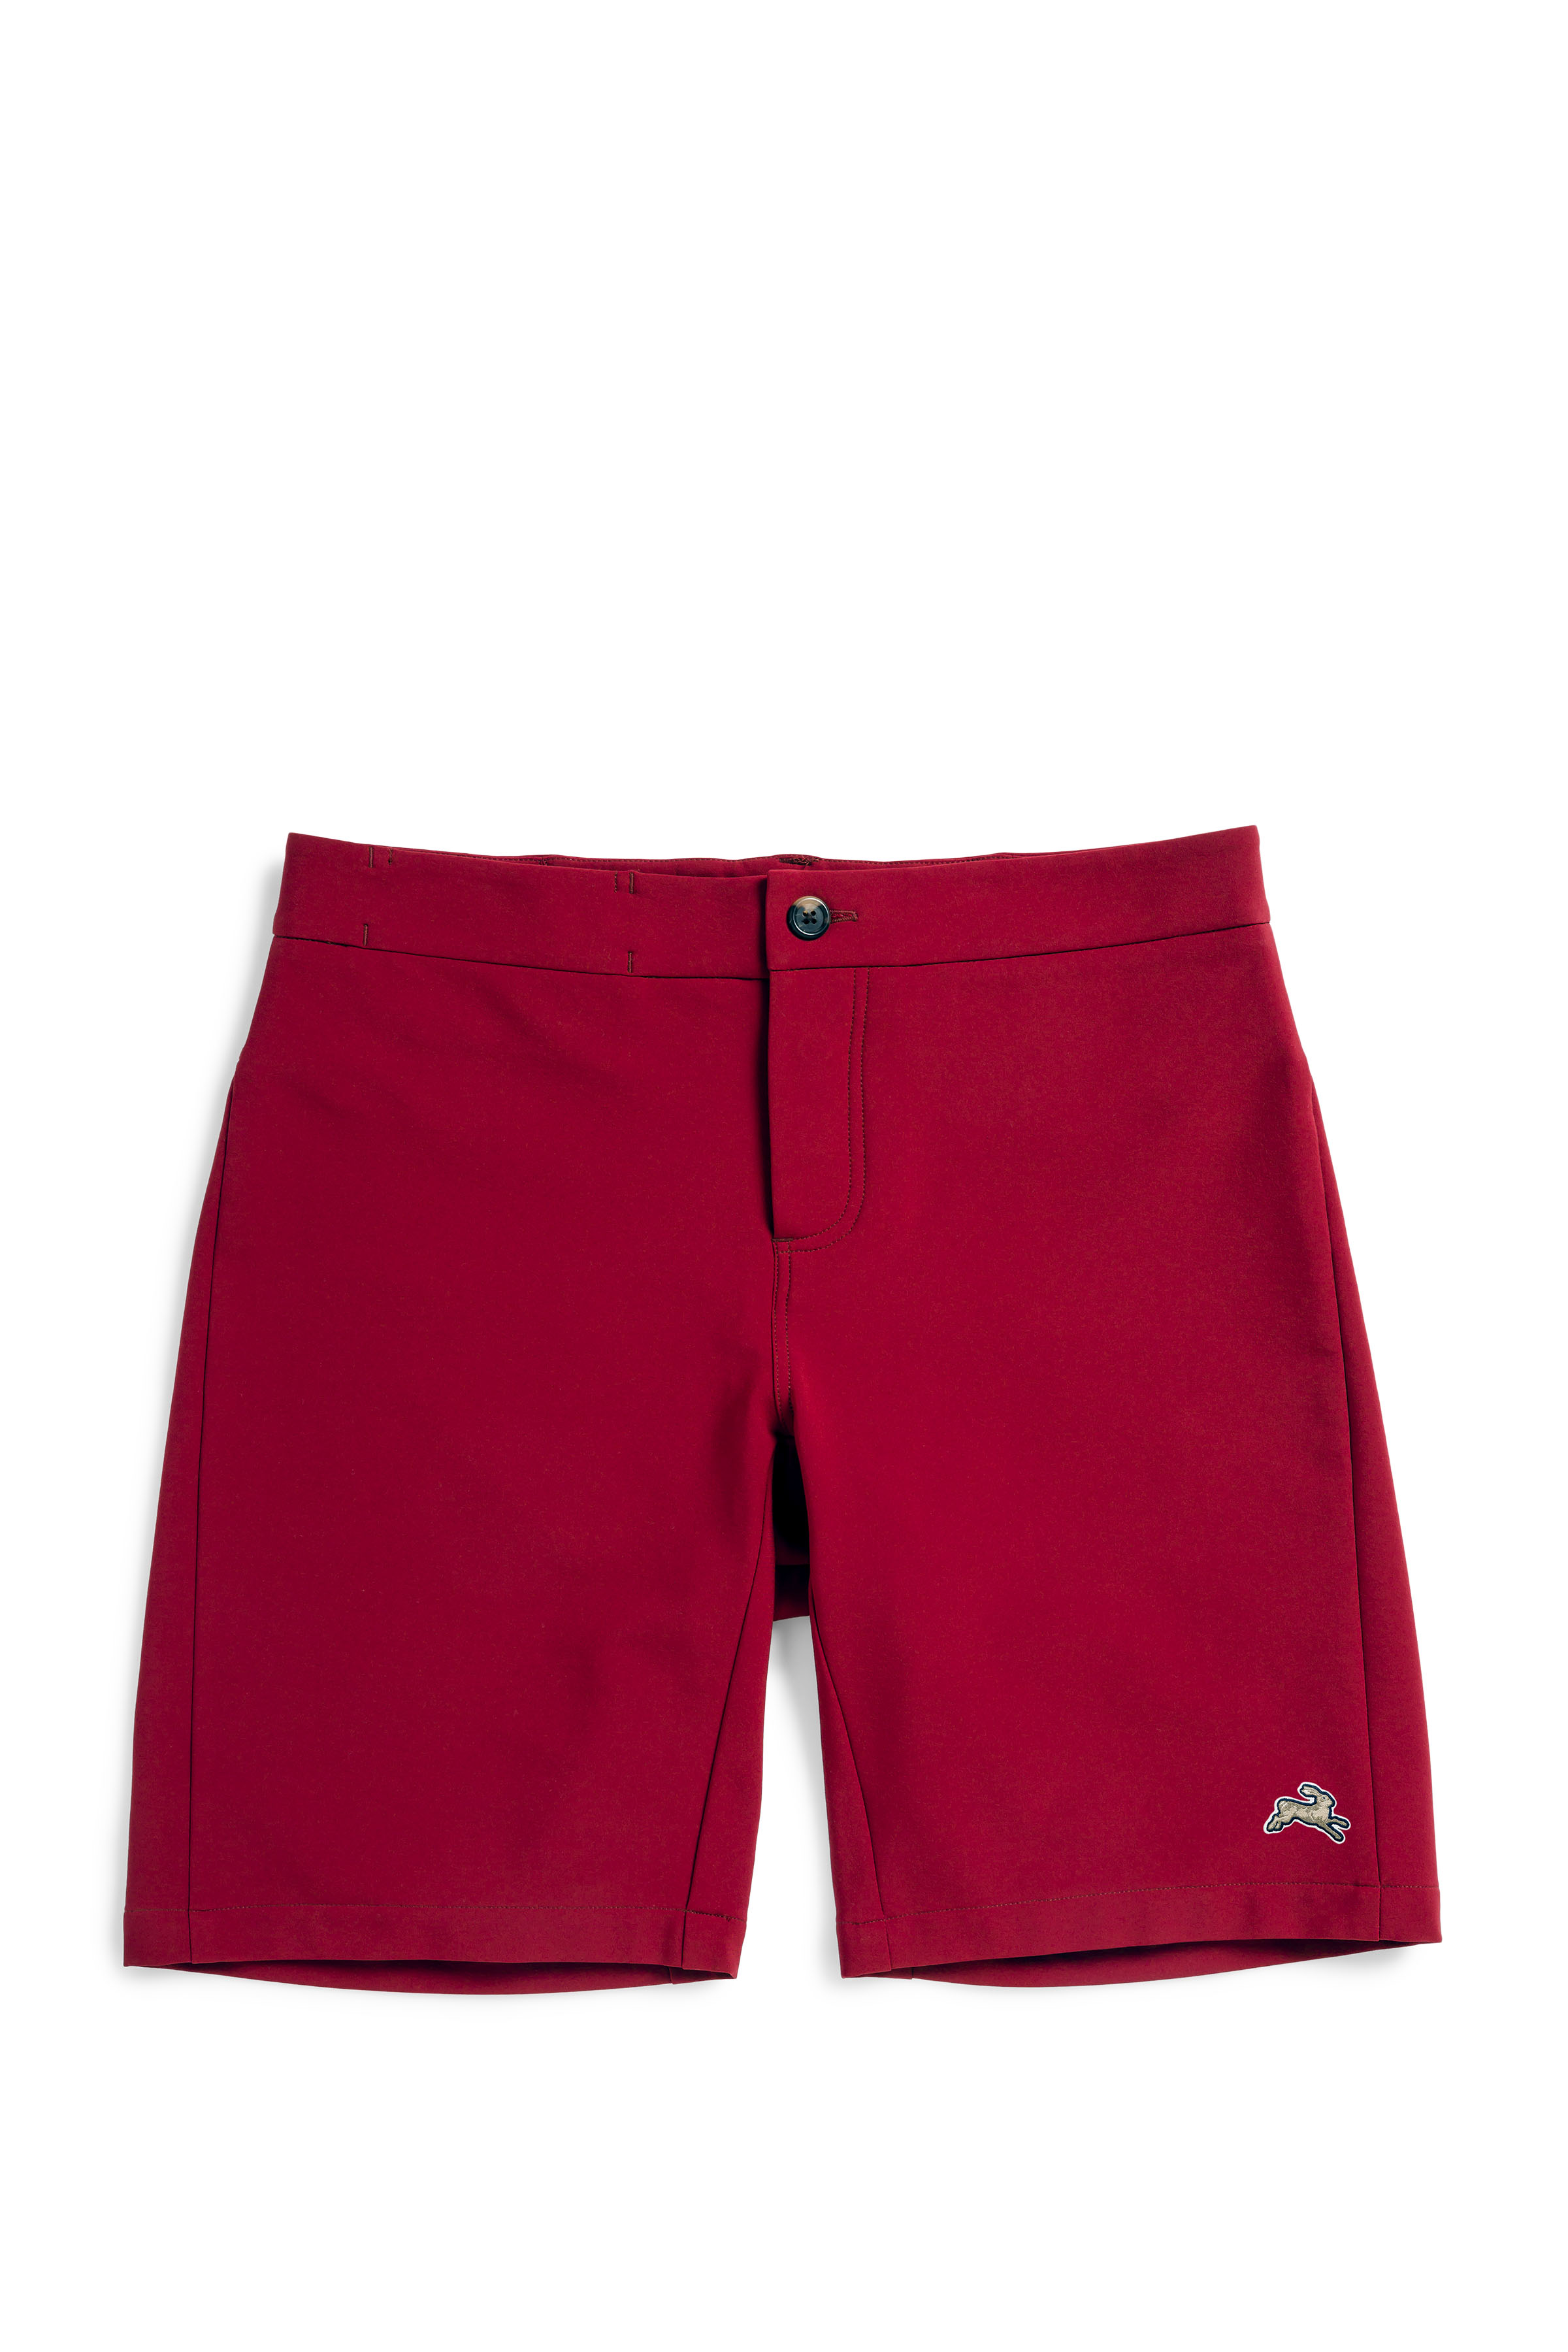 Longfellow Red Front_011 Tracksmith